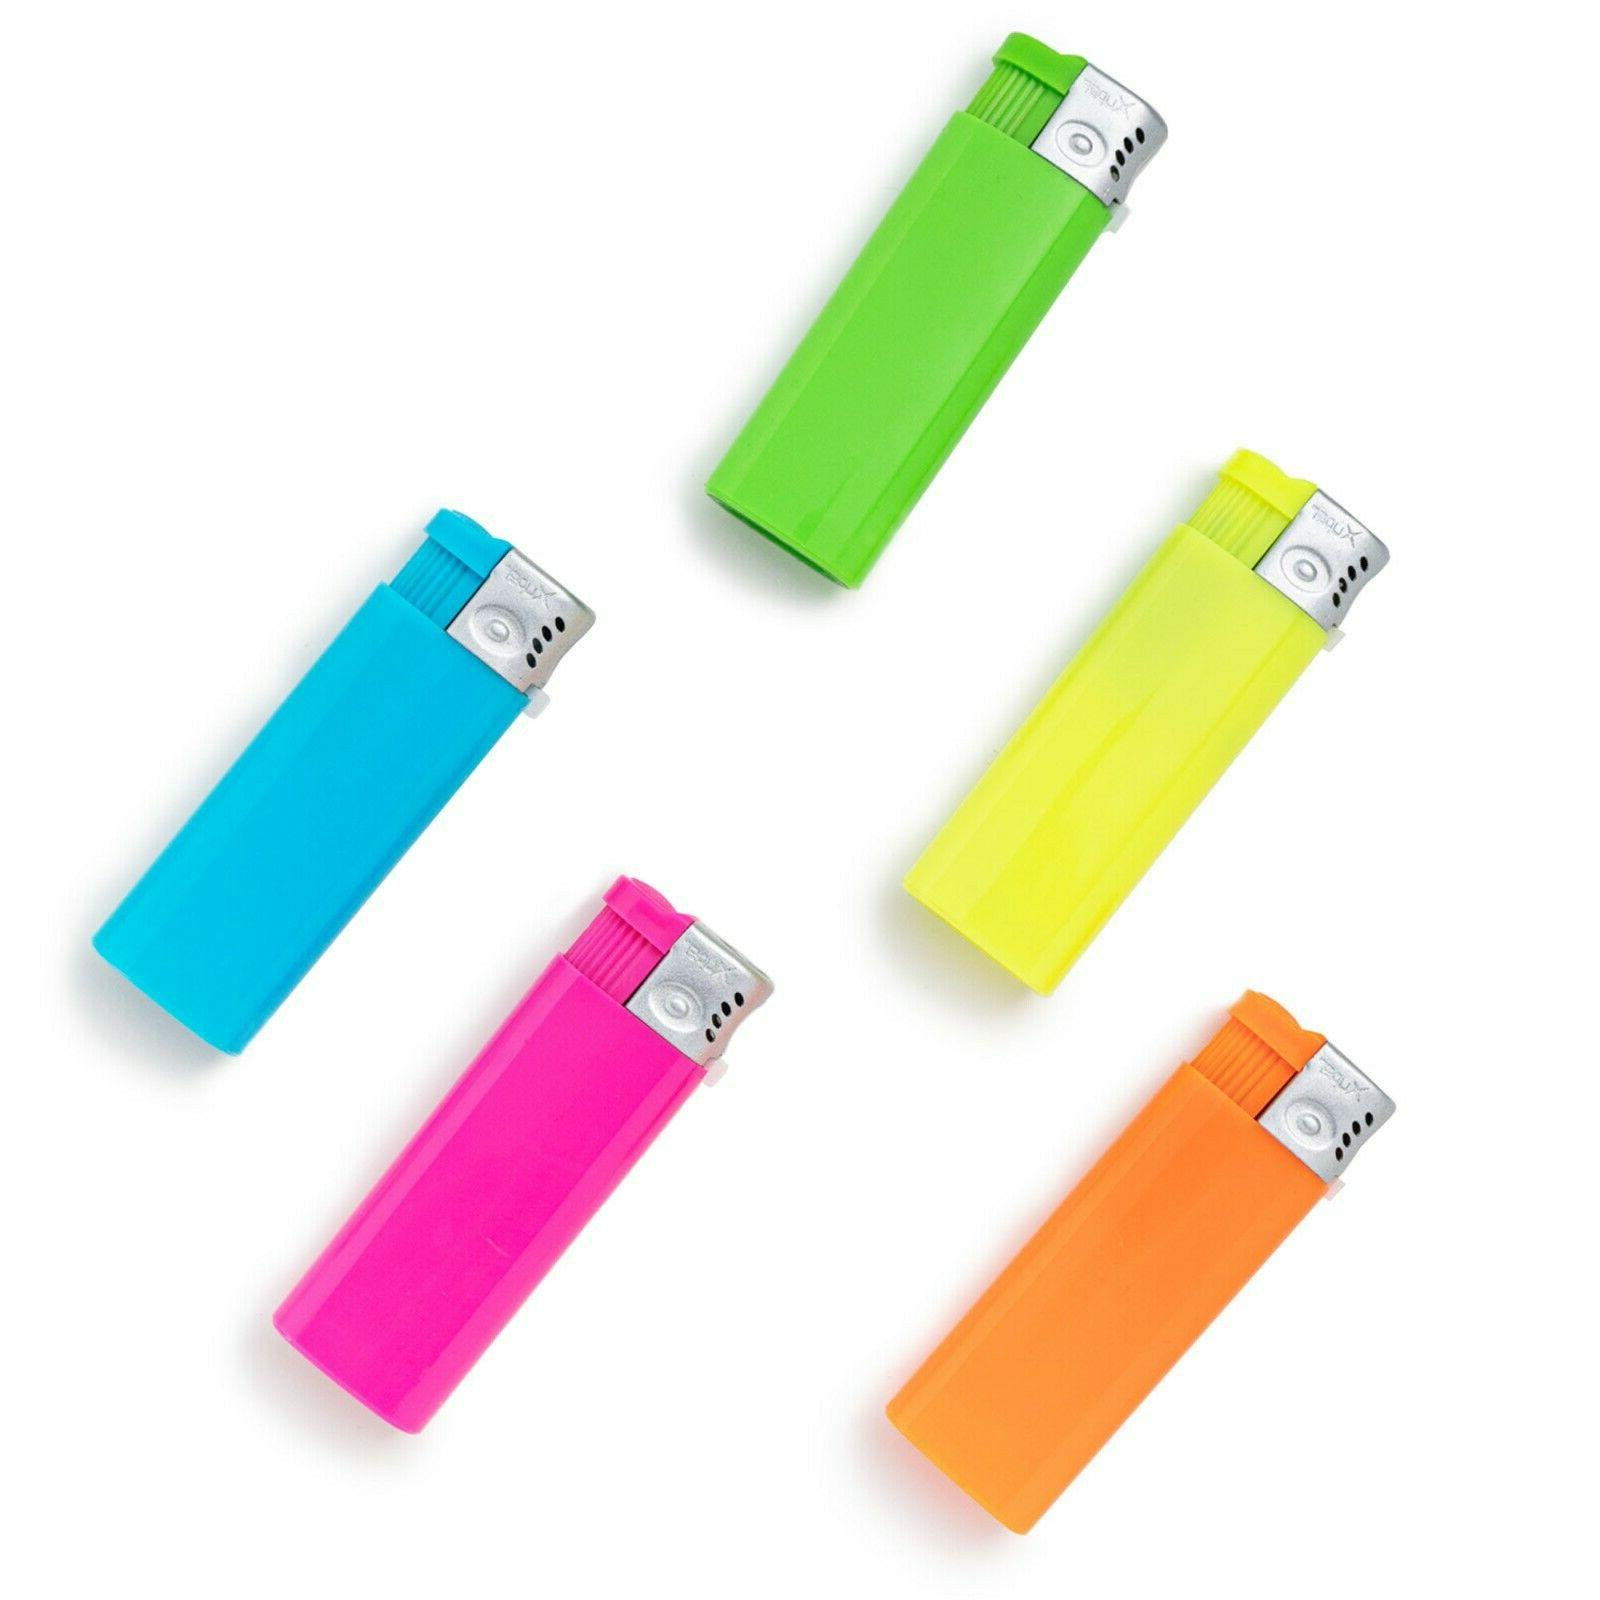 5 Pack Jet Lighters Adjustable & Butane Refillable